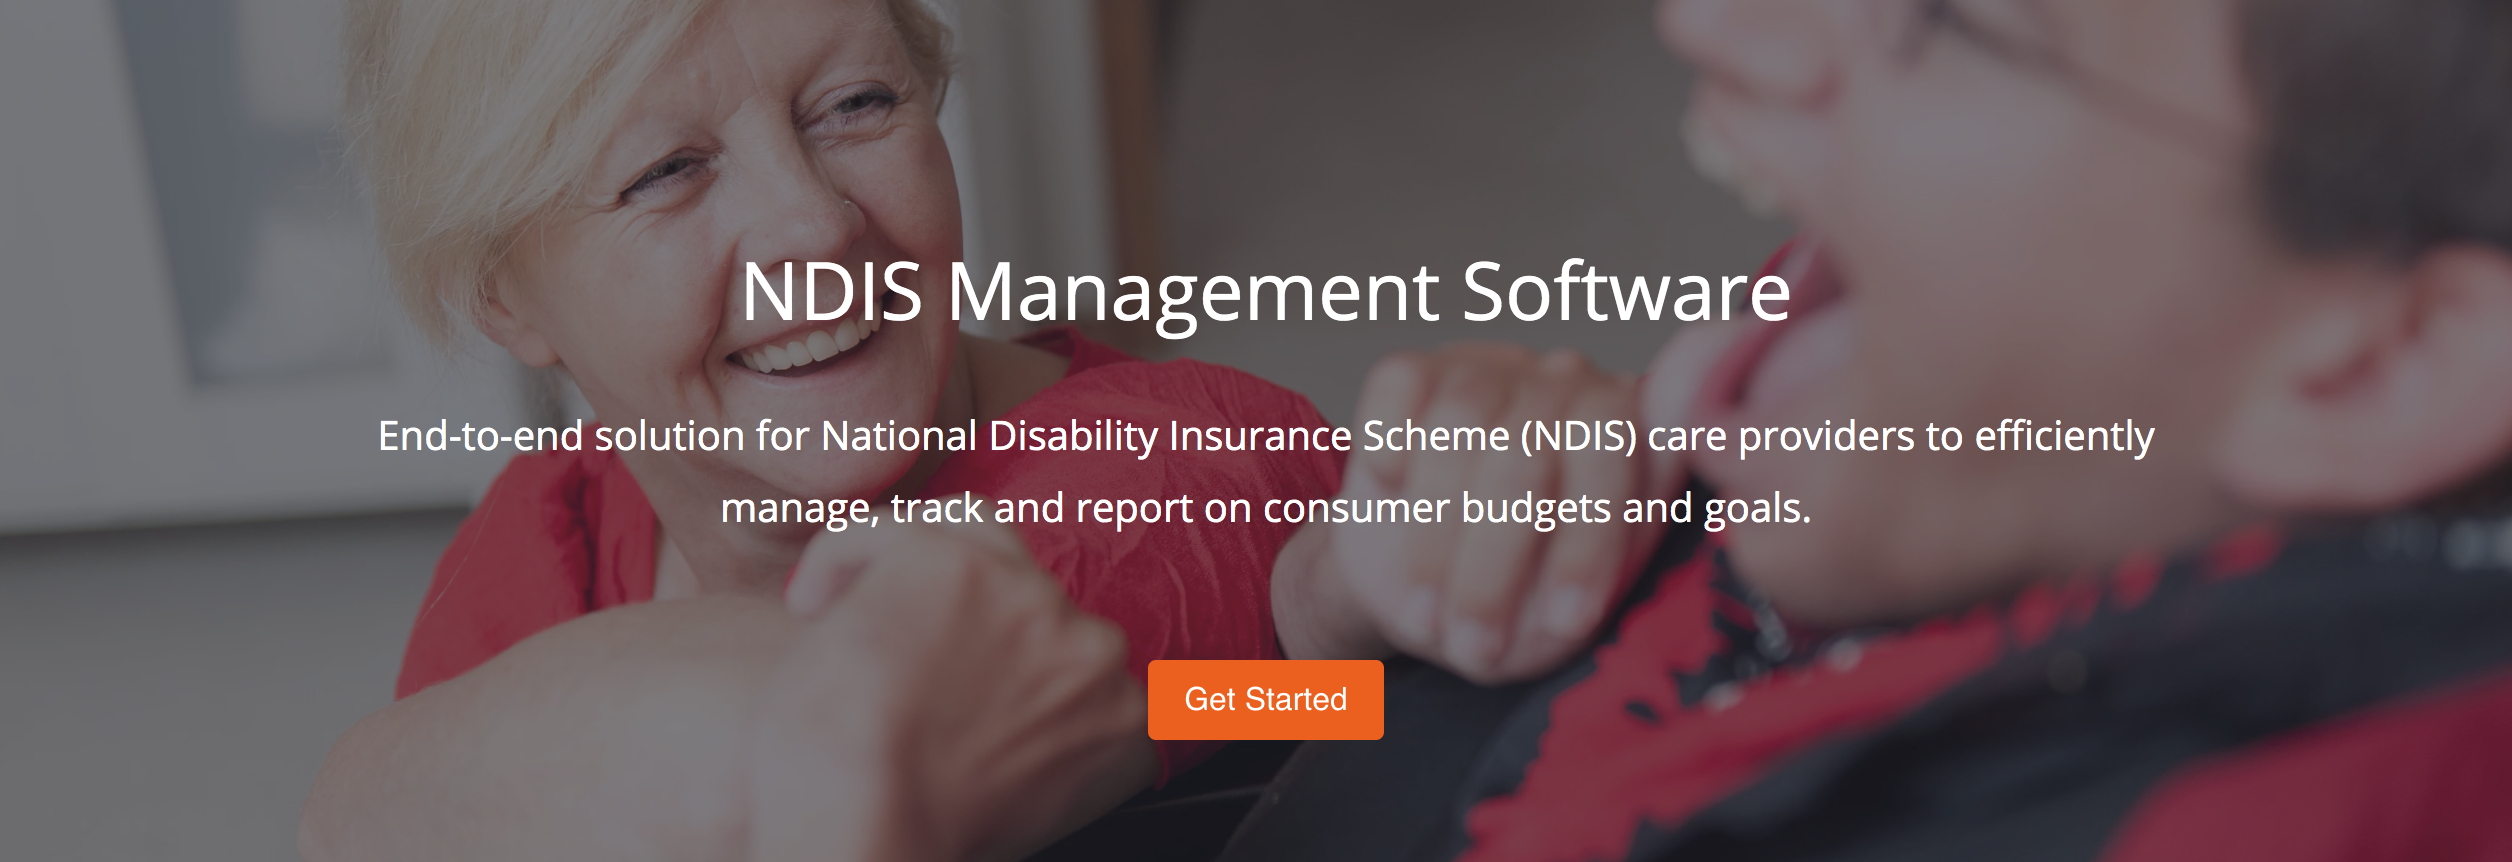 NDIS Management Software